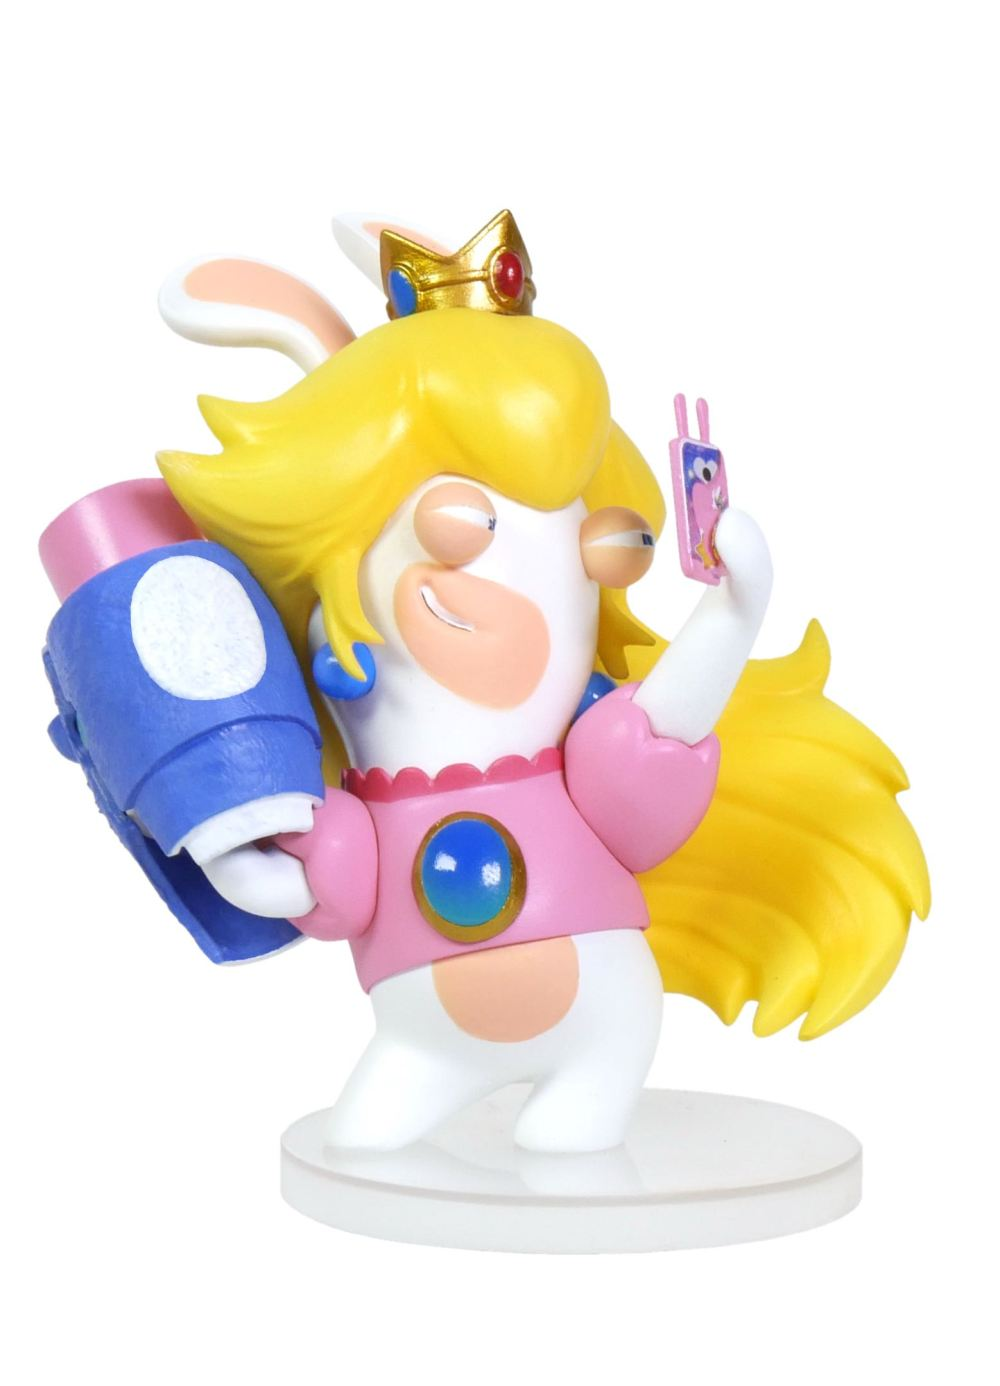 rabbid-peach-ubicollectibles-figure-photo-1